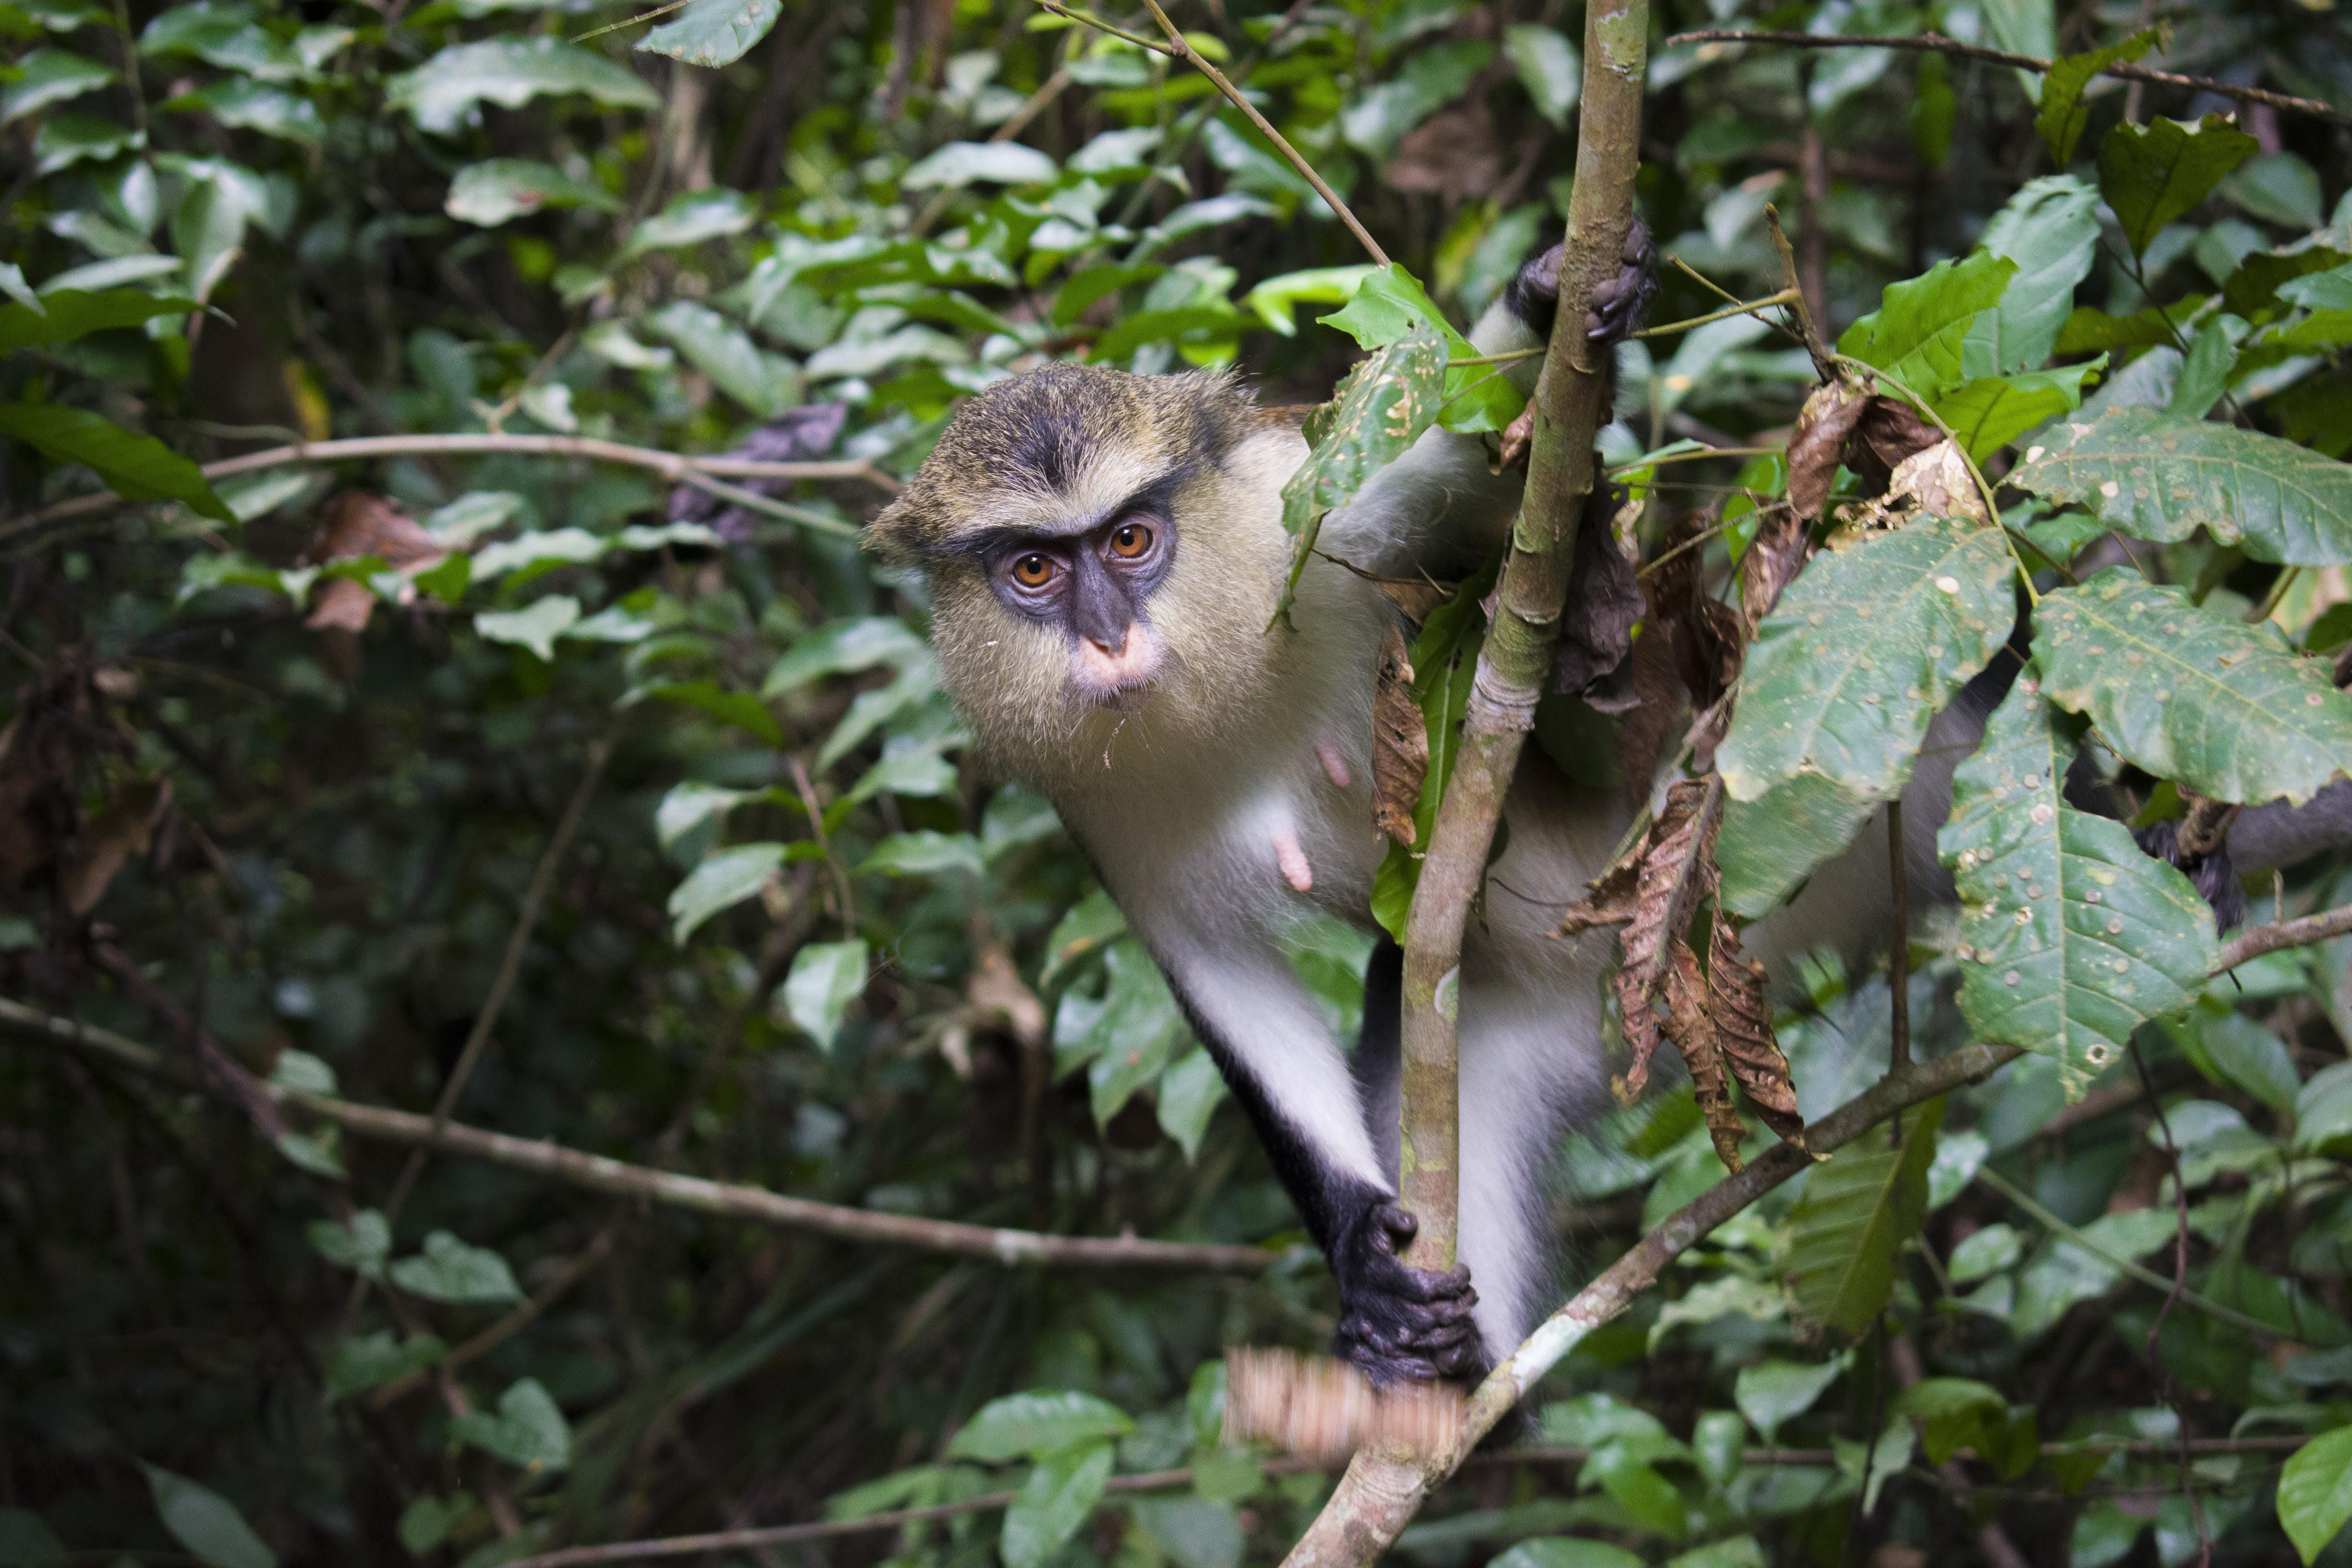 ITAP of a shy Mona monkey at the Tafi Monkey Sanctuary in Ghana.#PHOTO #CAPTURE #NATURE #INCREDIBLE